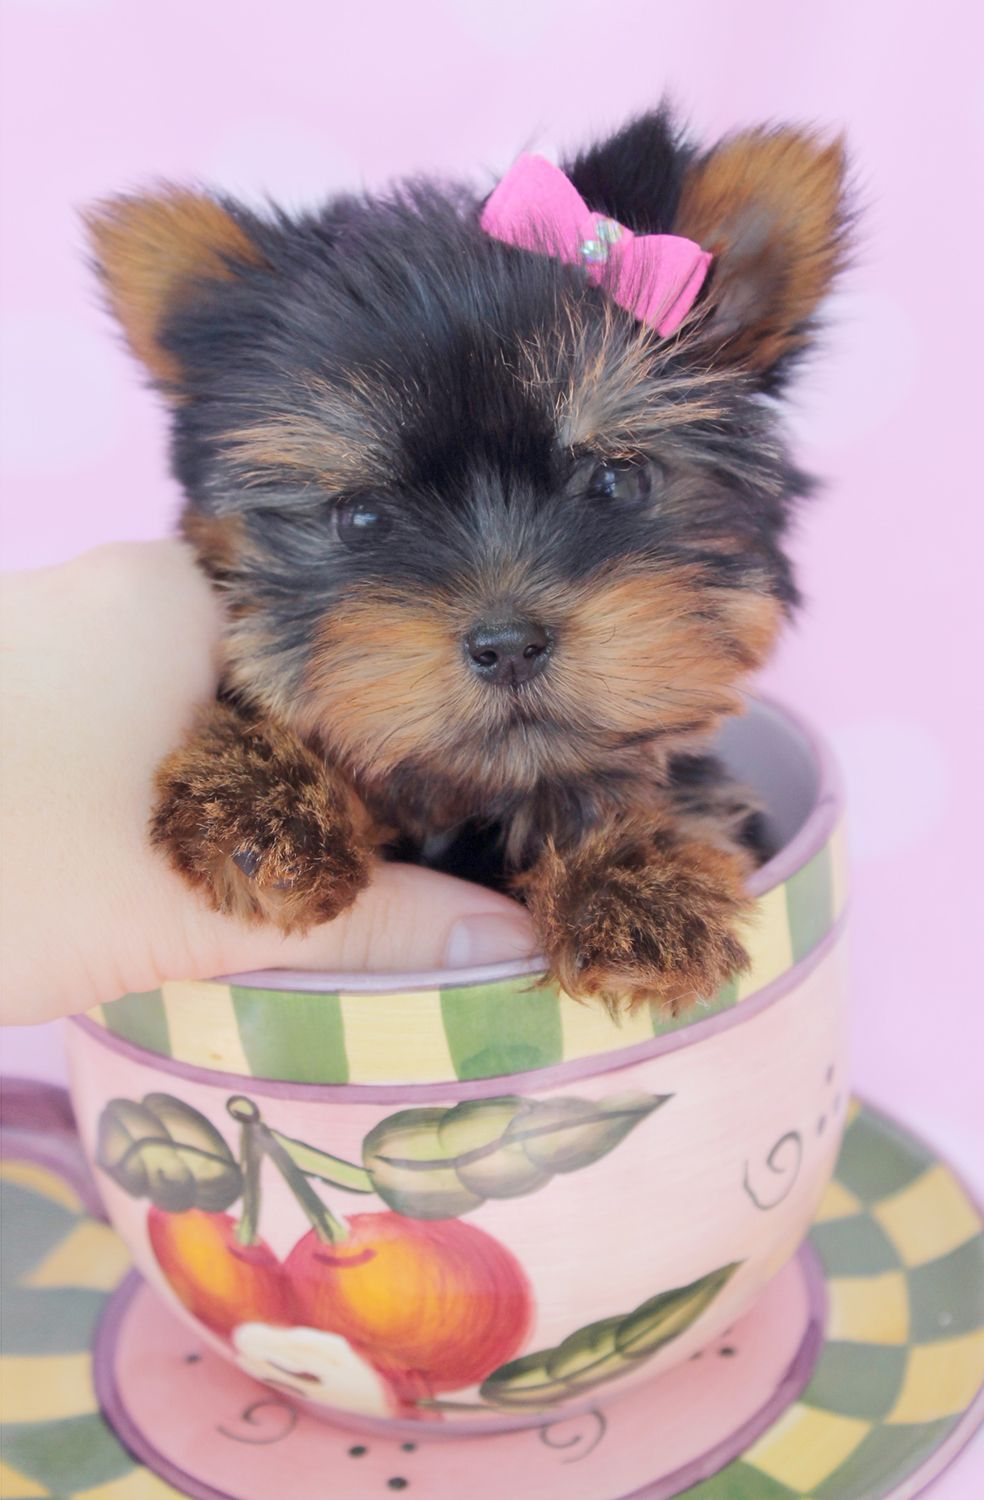 Itty Bitty Teacup Yorkie Puppy By Teacupspuppies Com Yorkie Puppy For Sale Teacup Yorkie Puppy Teacup Puppies